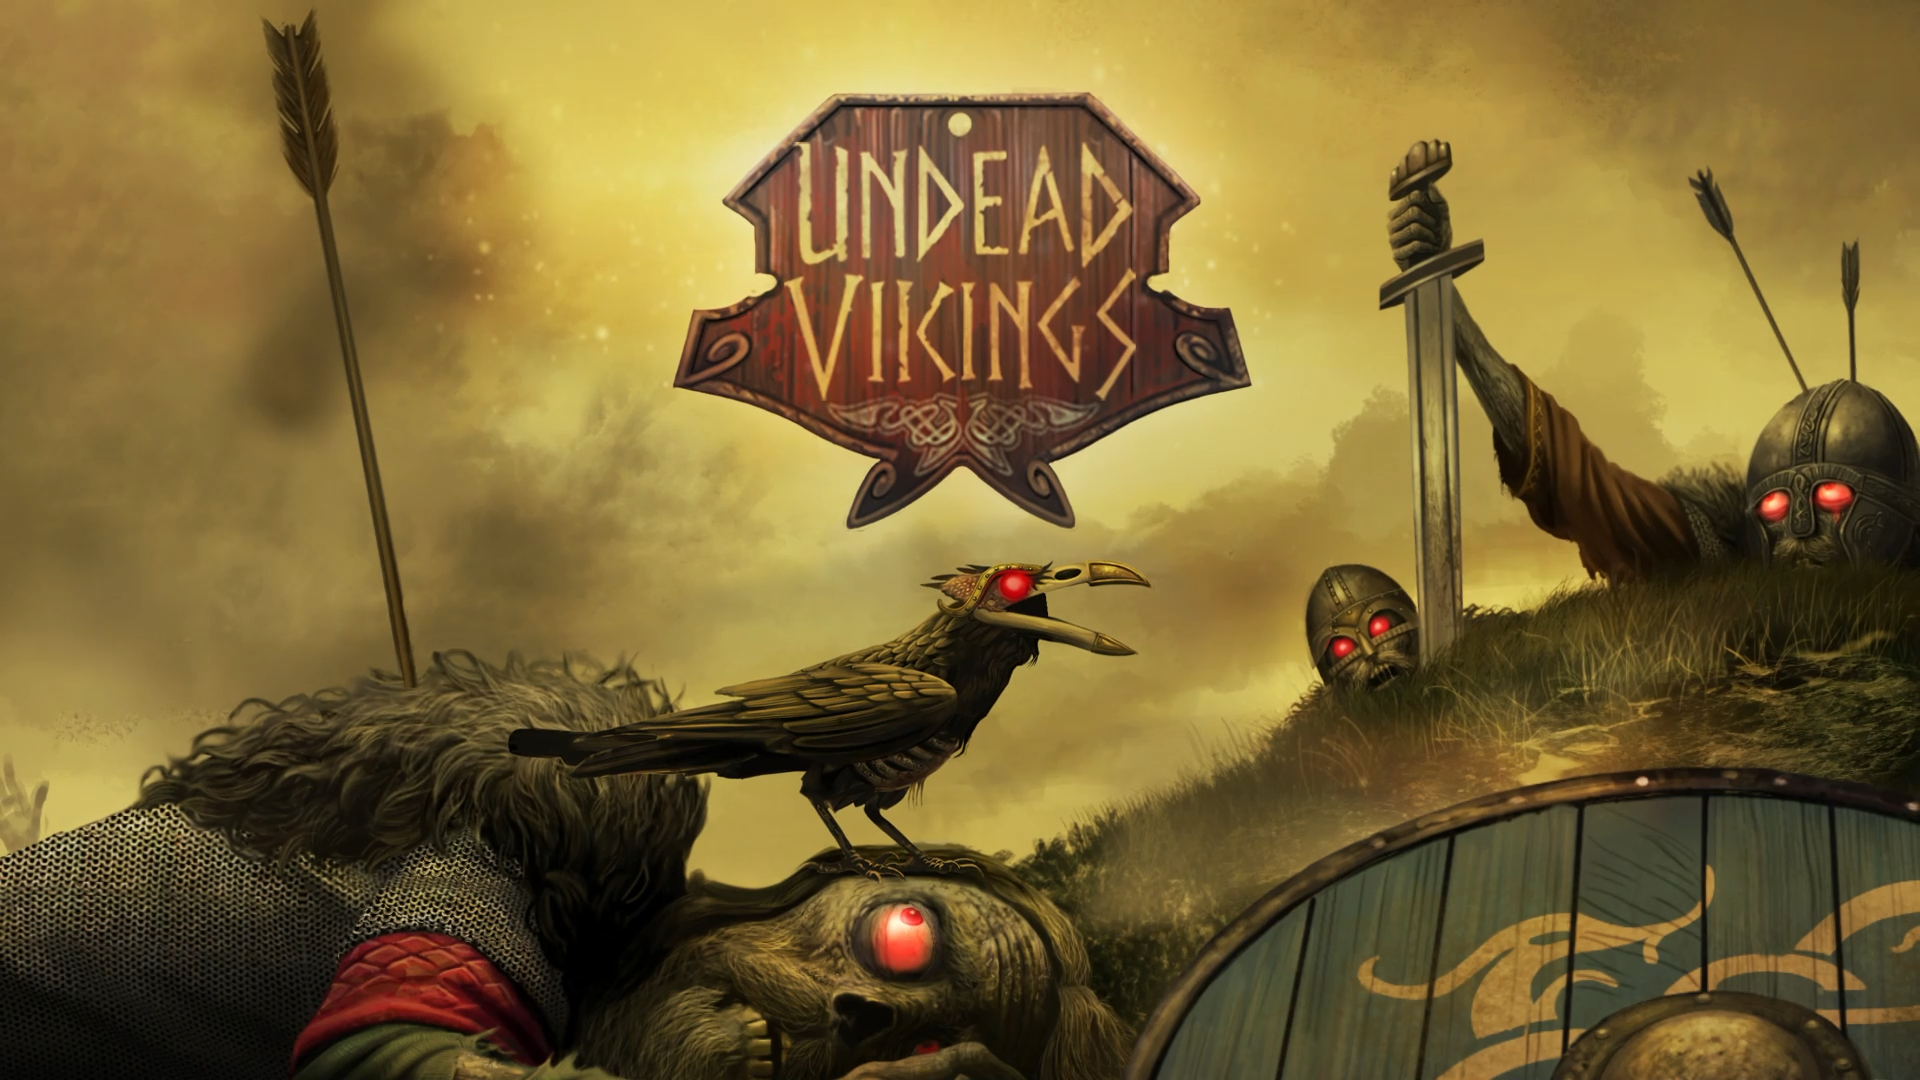 Undead Vikings removed temporarily for adjustment purposes